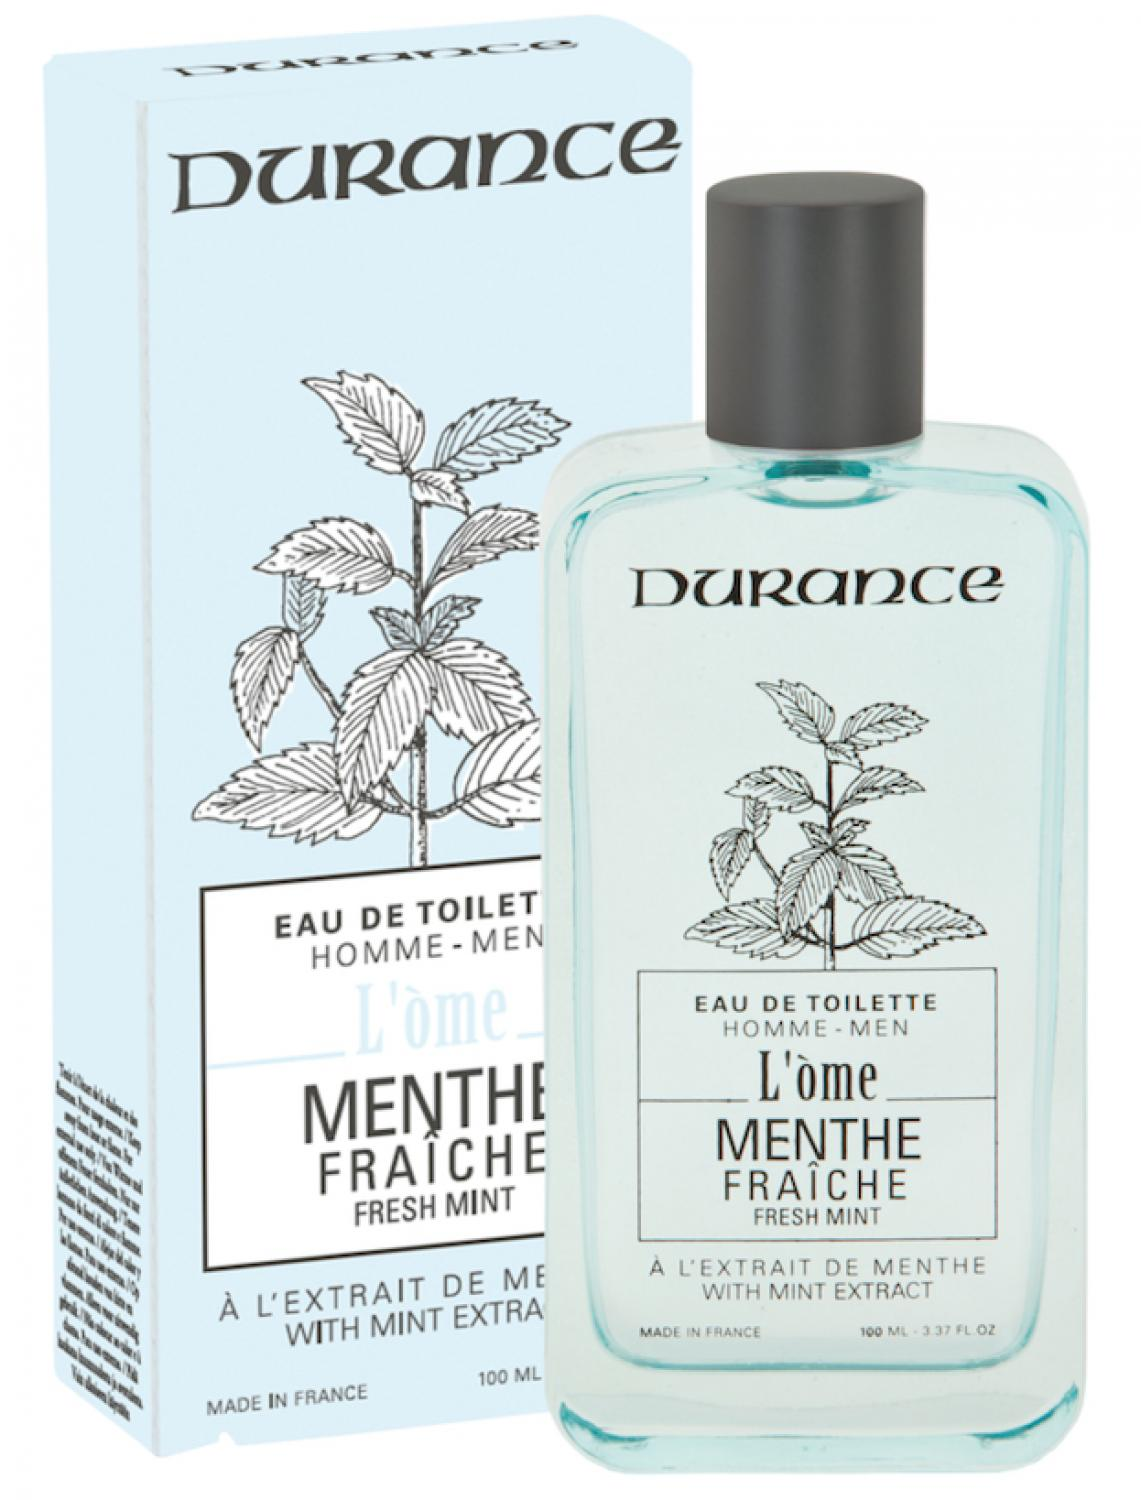 Eau de Toilette - Fresh Mint